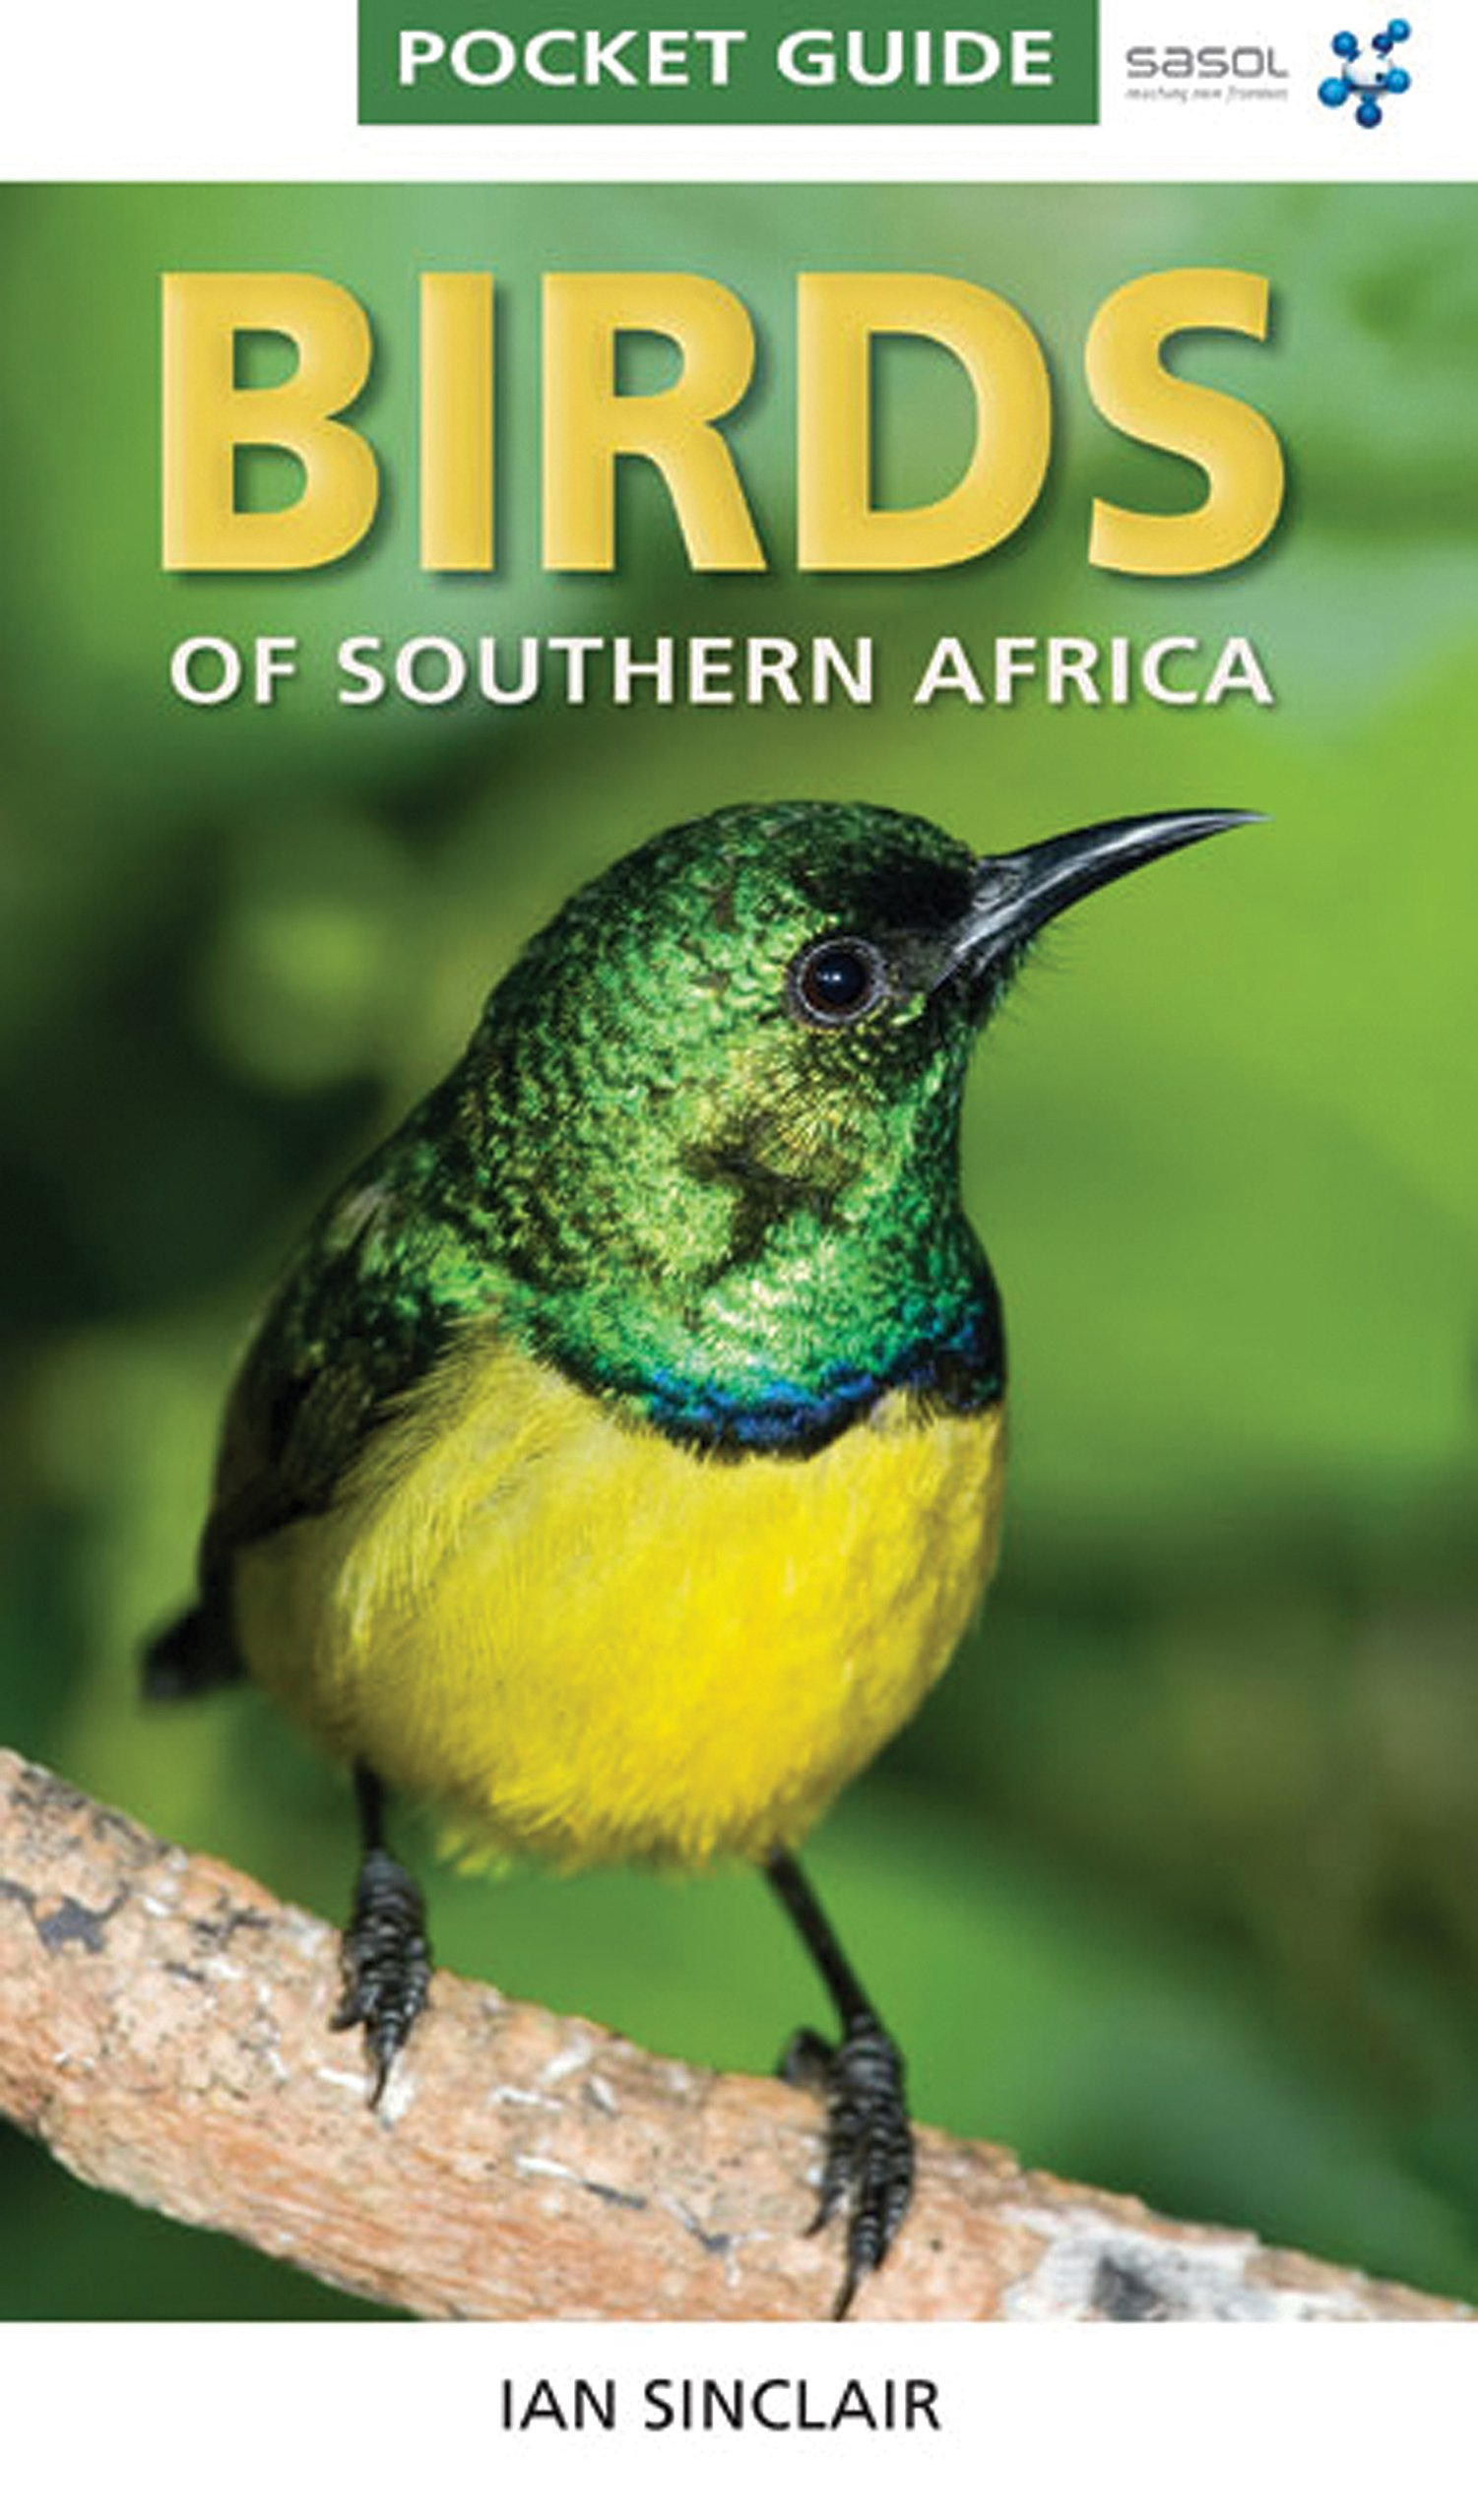 pocket guide birds of southern africa ian sinclair